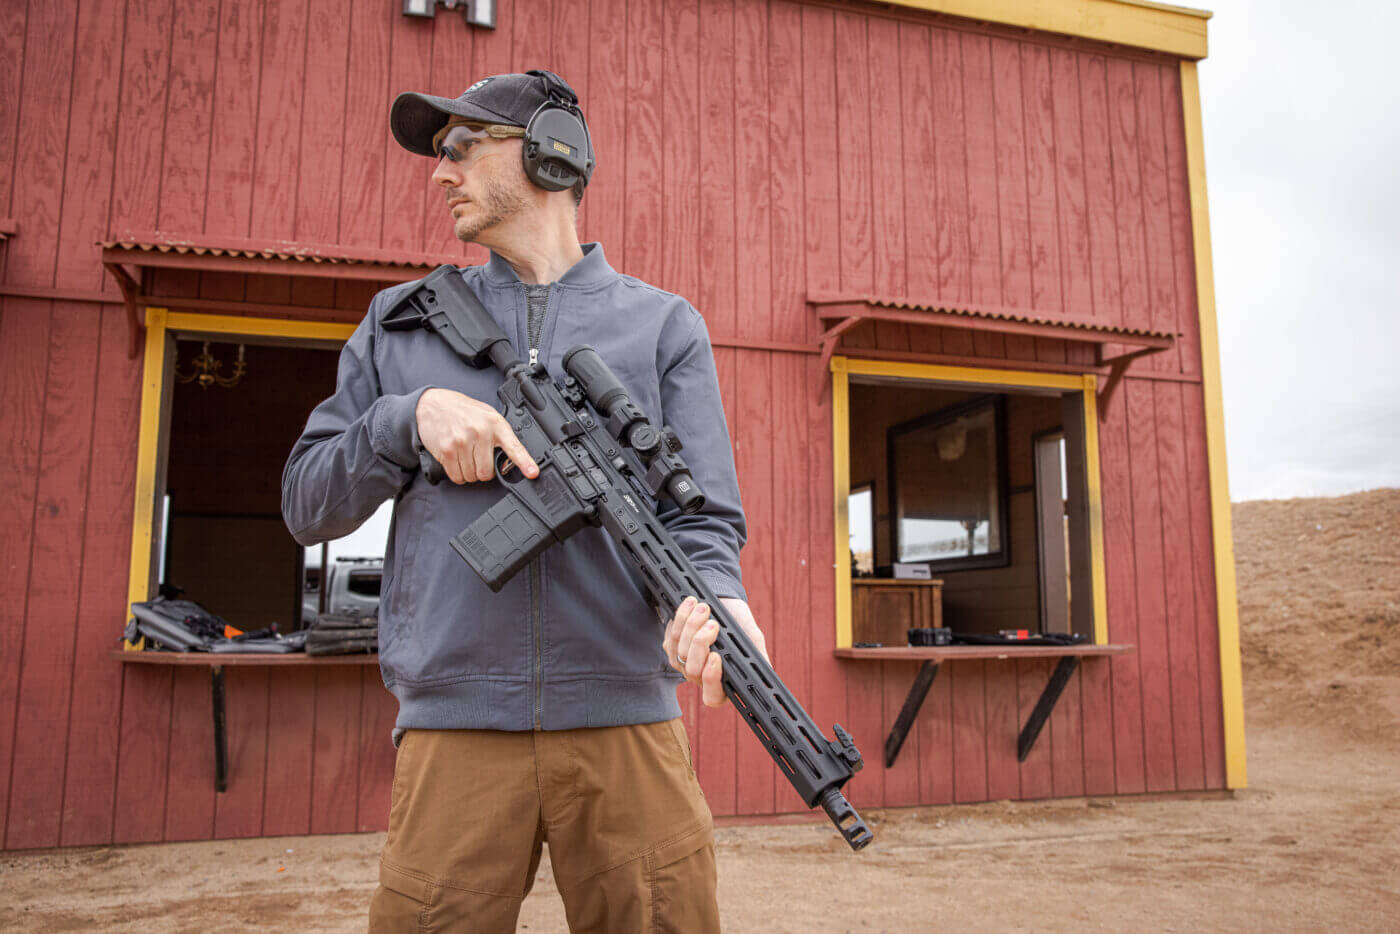 Man holding AR-15 rifle in .308 Win